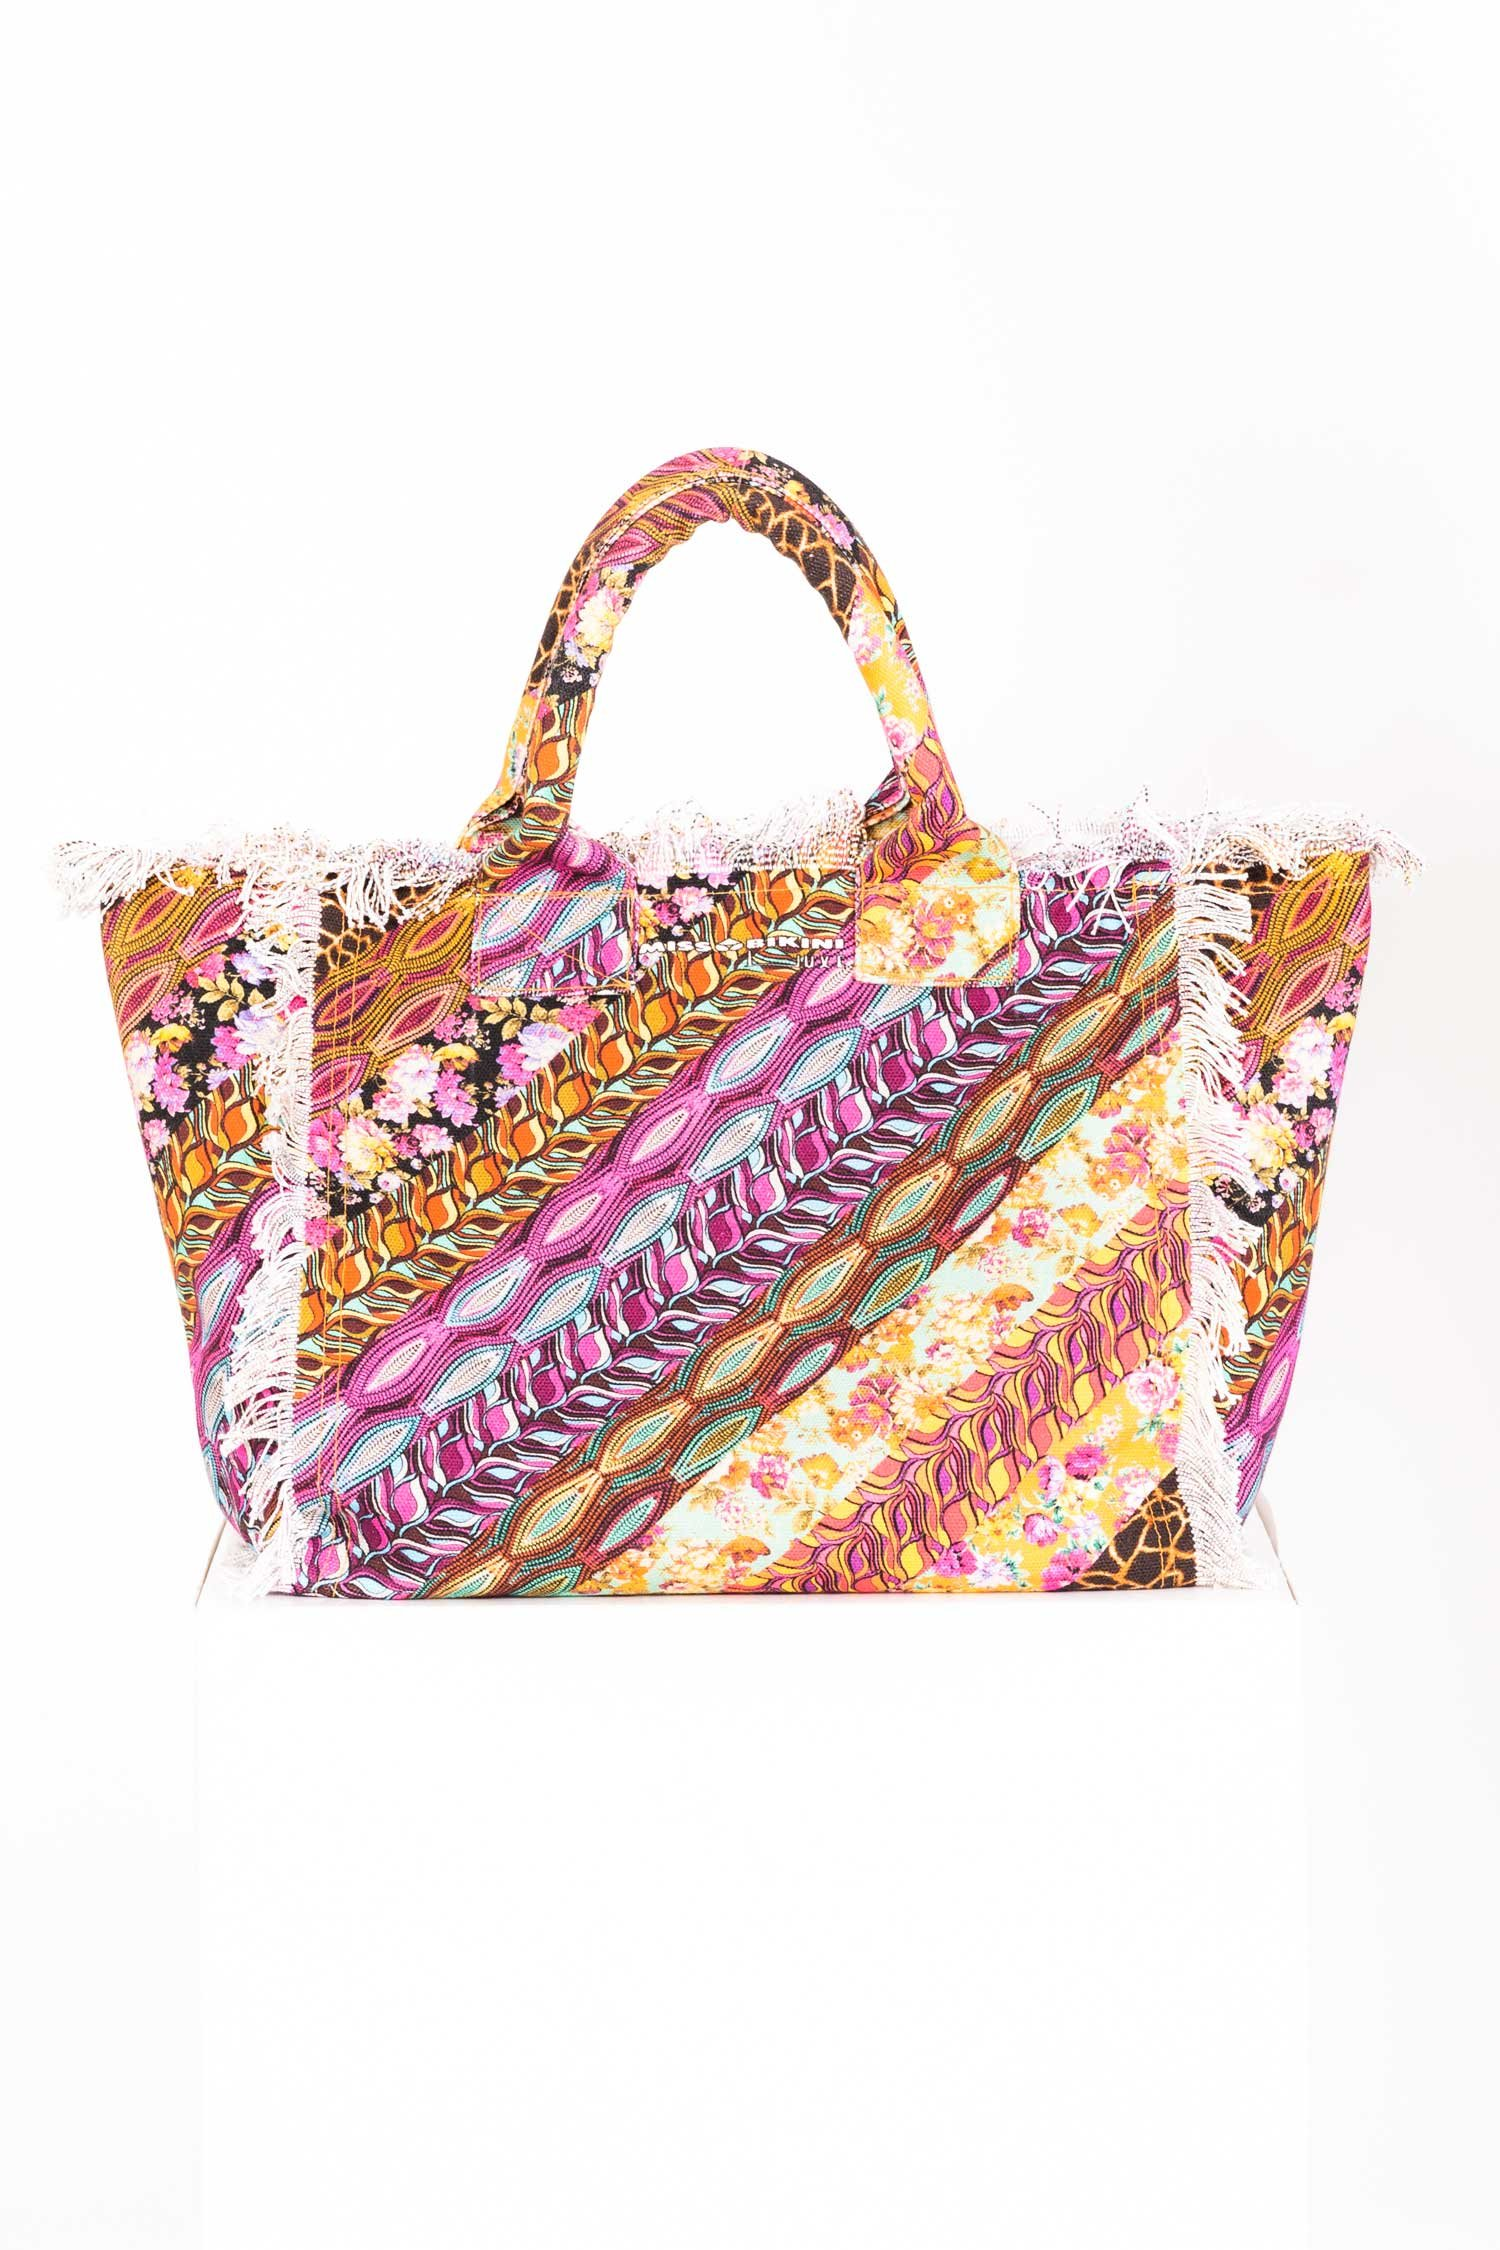 PATCHWORK BAG WITH FRINGES - Unico